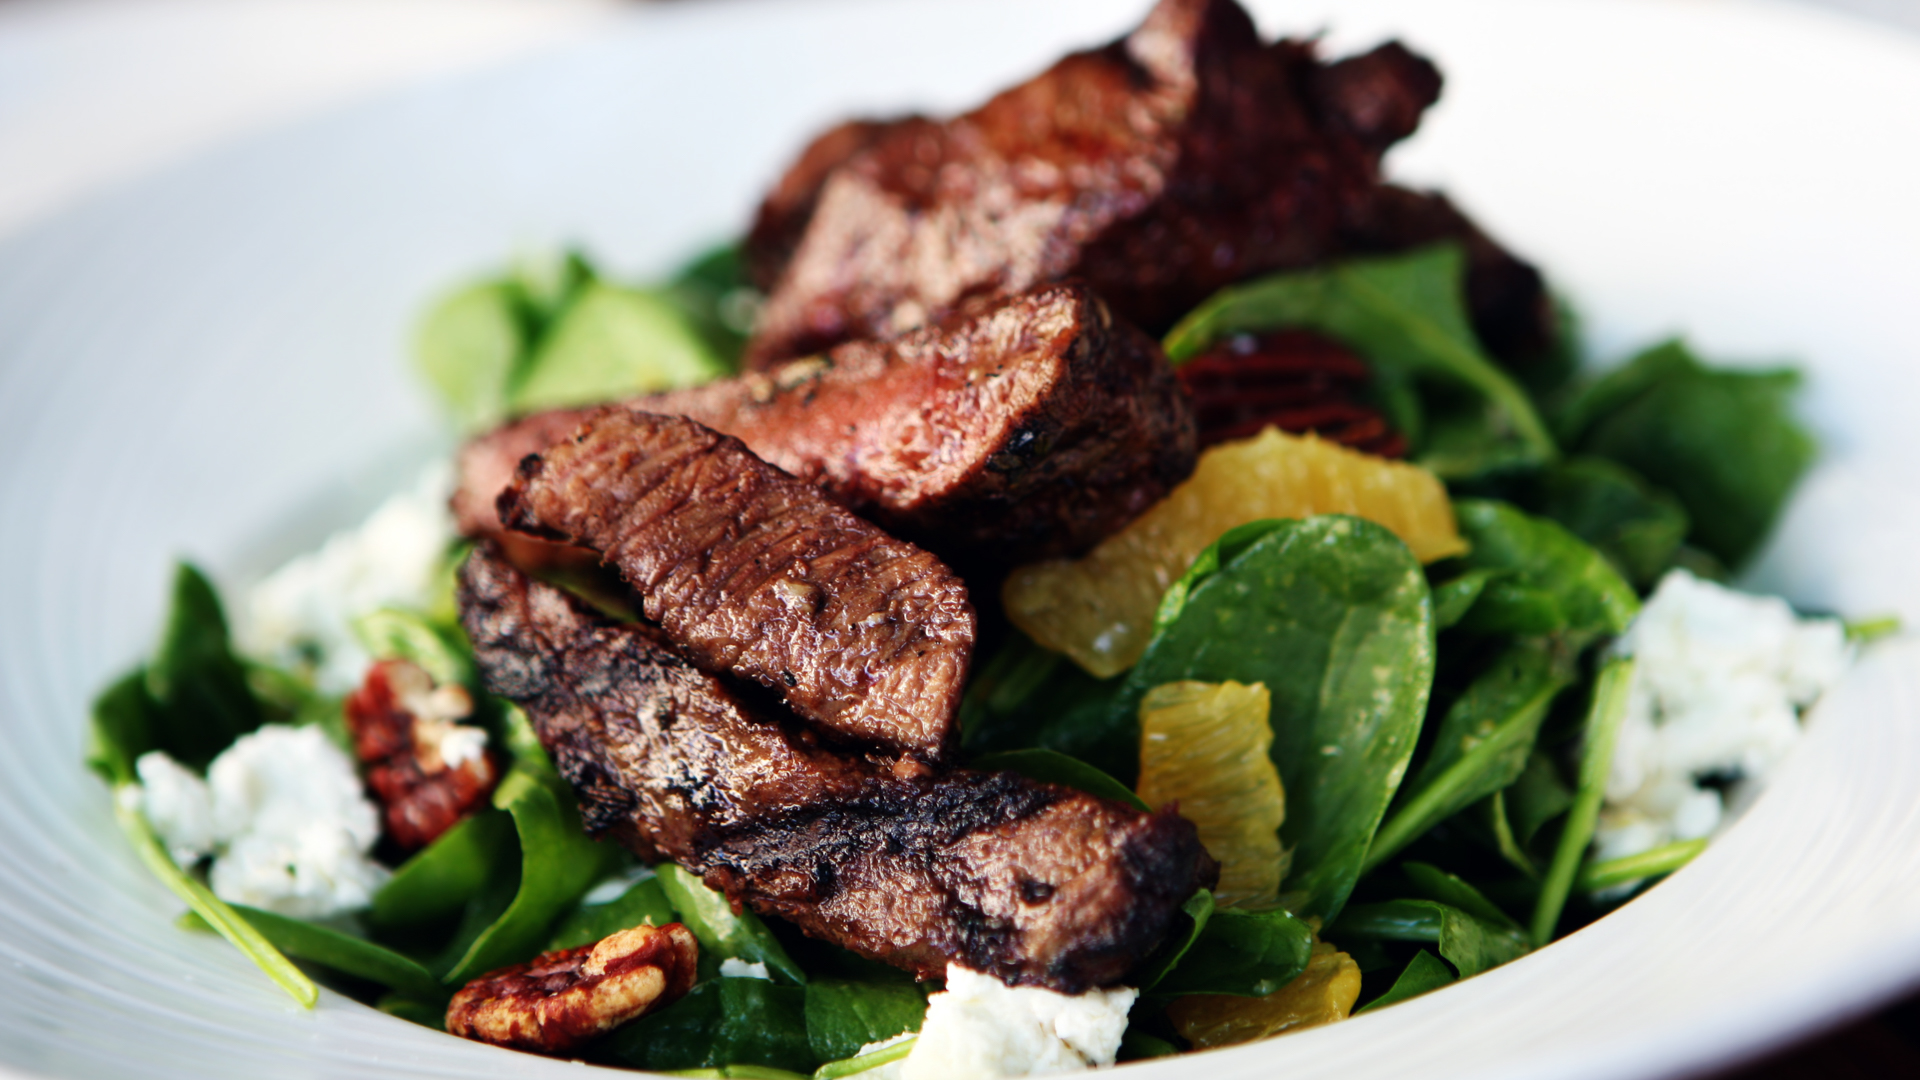 Costco vs. Sam's Club: If You're Craving a Steak, This Store Has the Best Deal